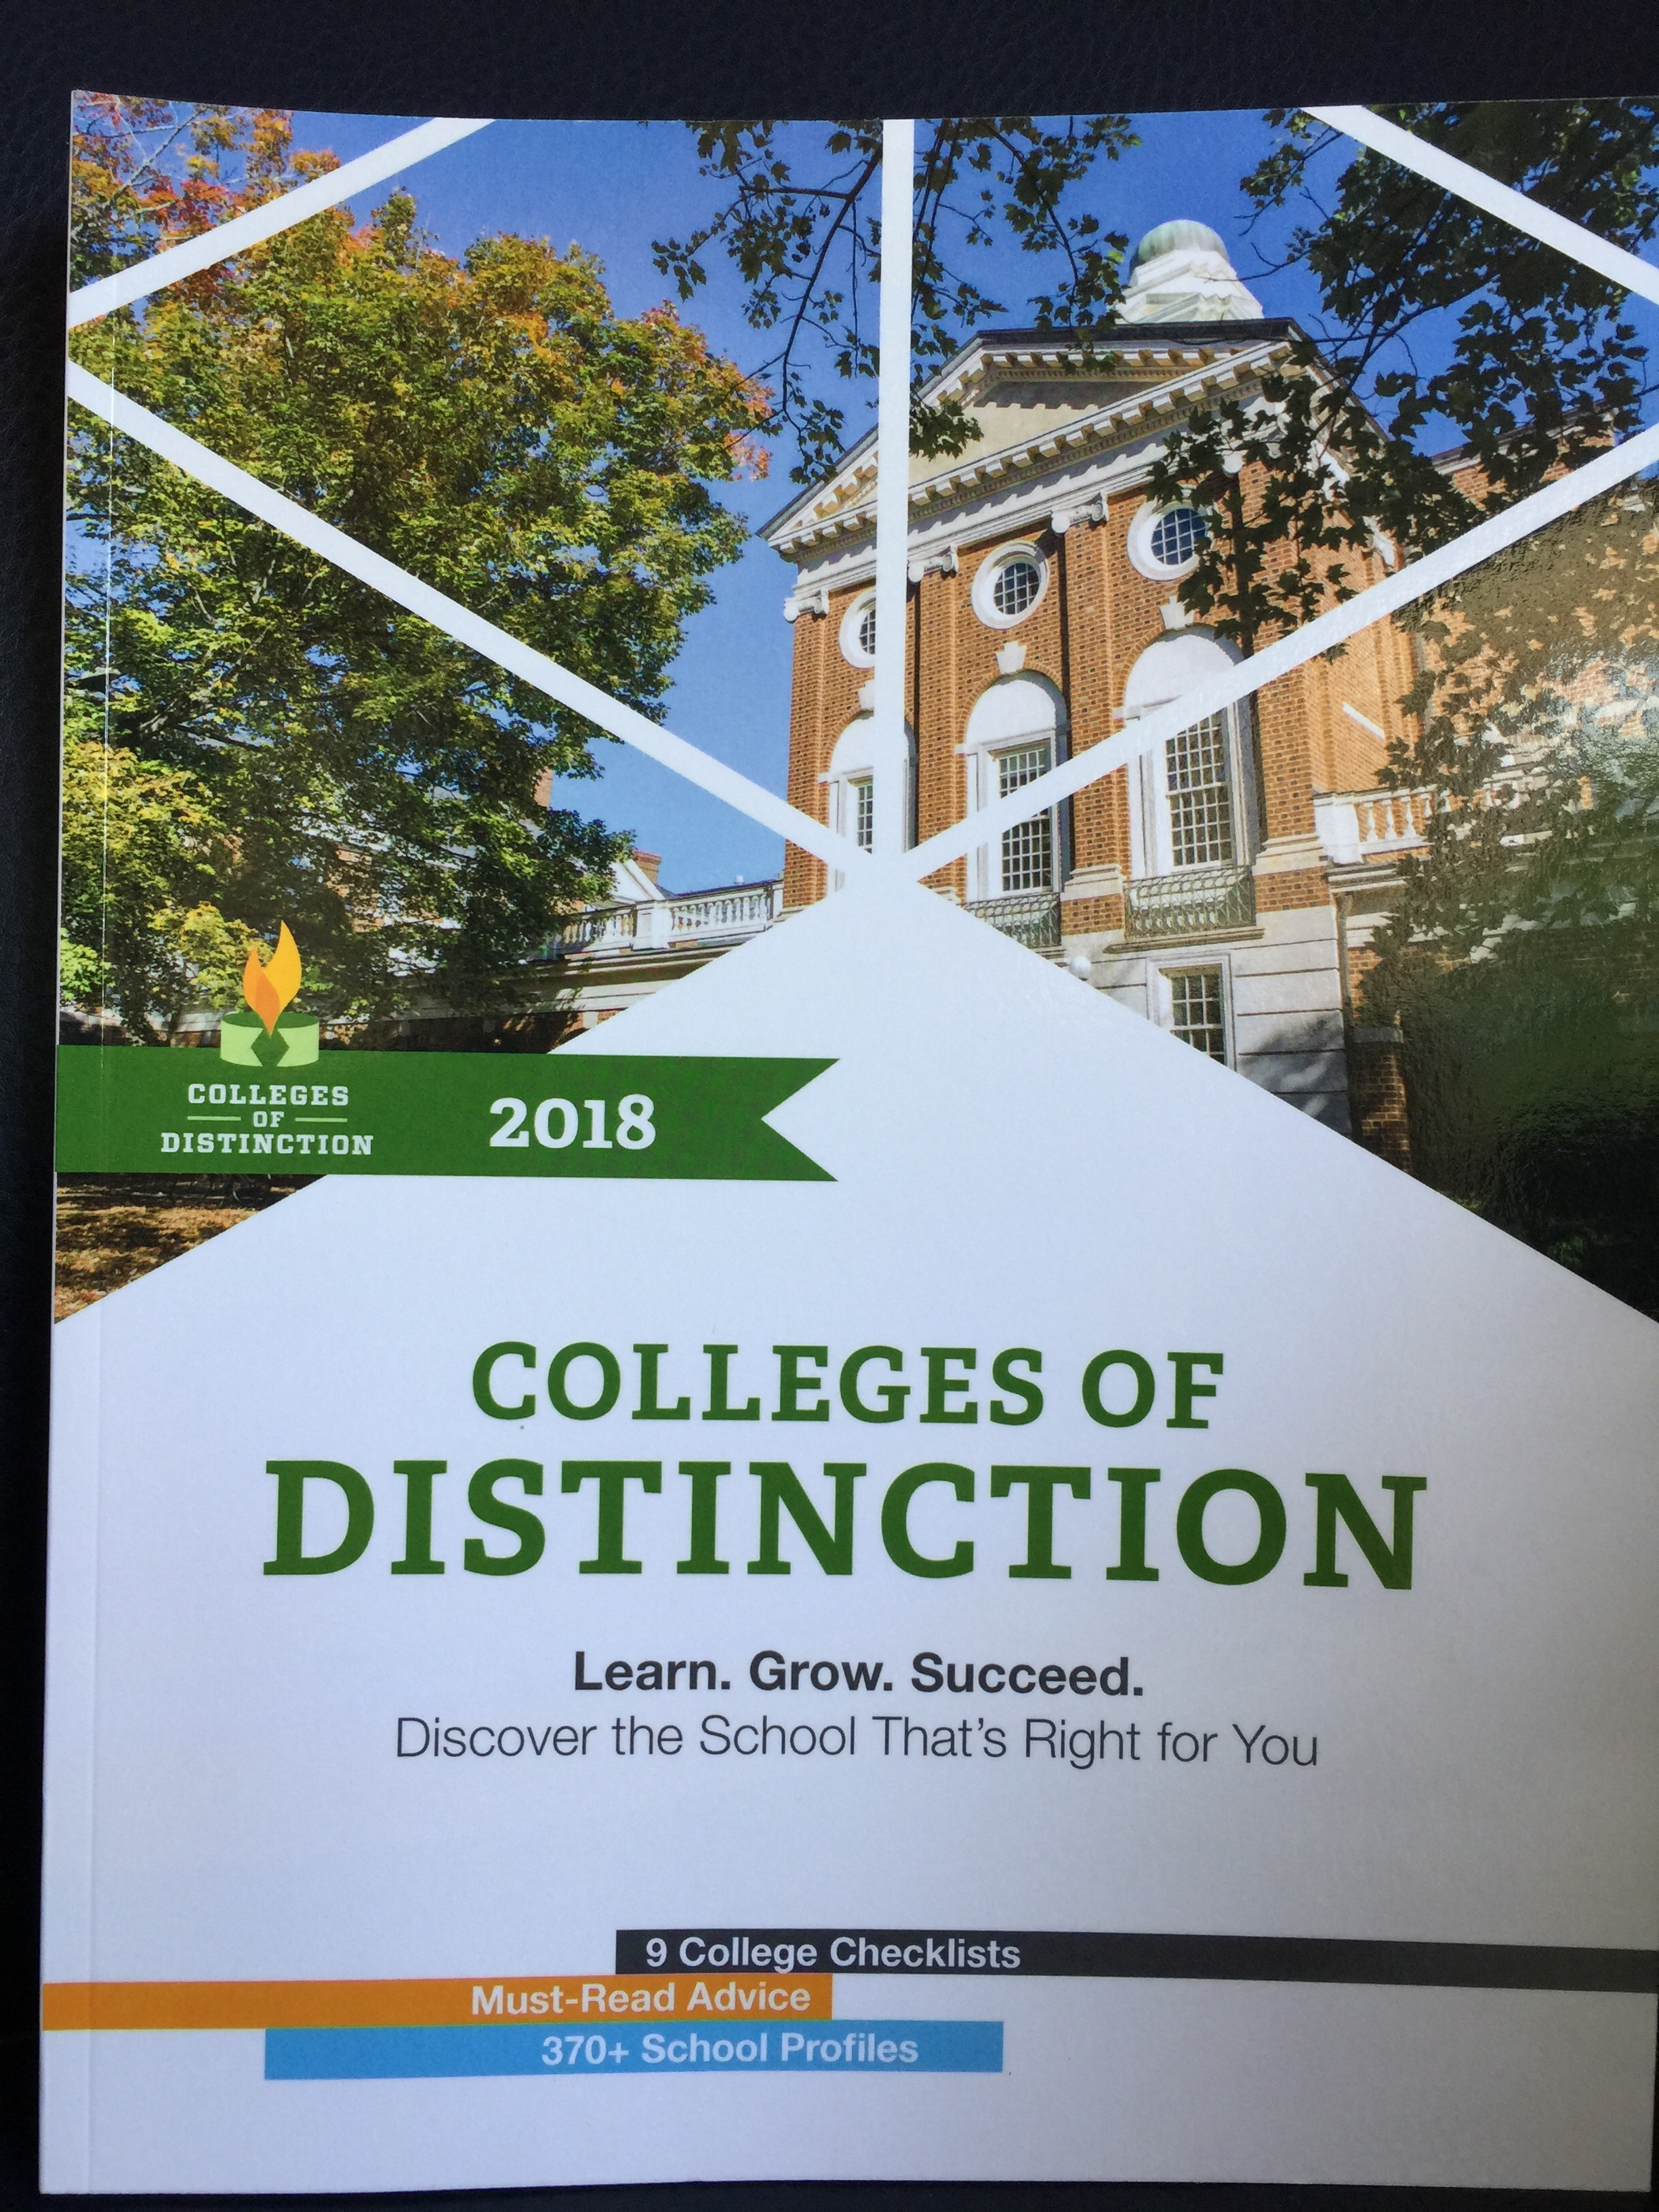 This one... - This guide book was created to help students and parents find colleges that may not have been considered originally, but might be exactly the right fit.